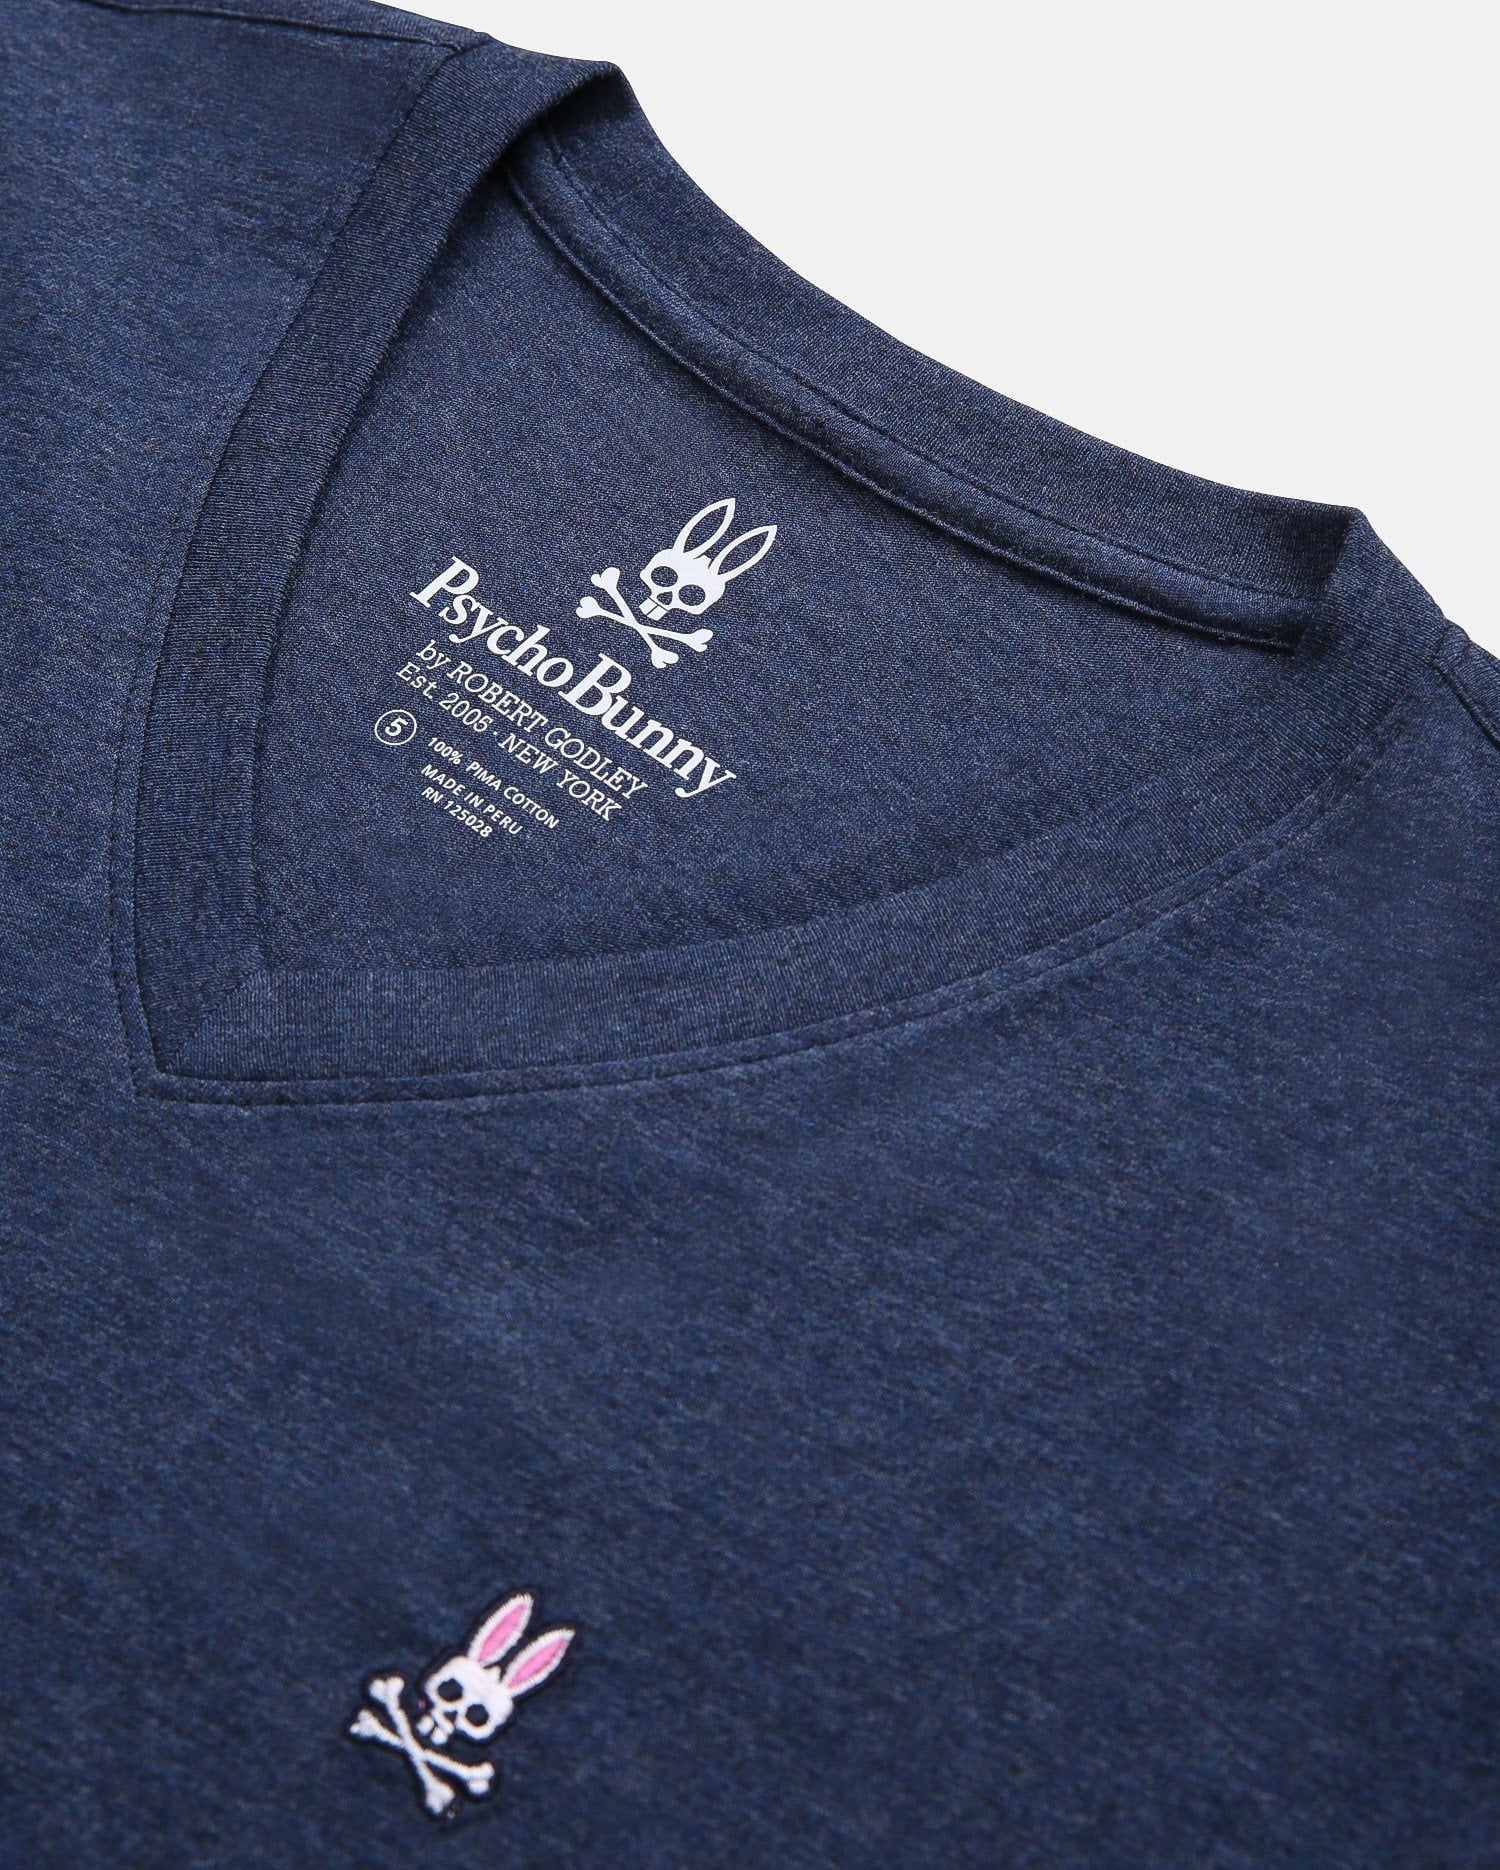 HEATHER NAVY (HNV)